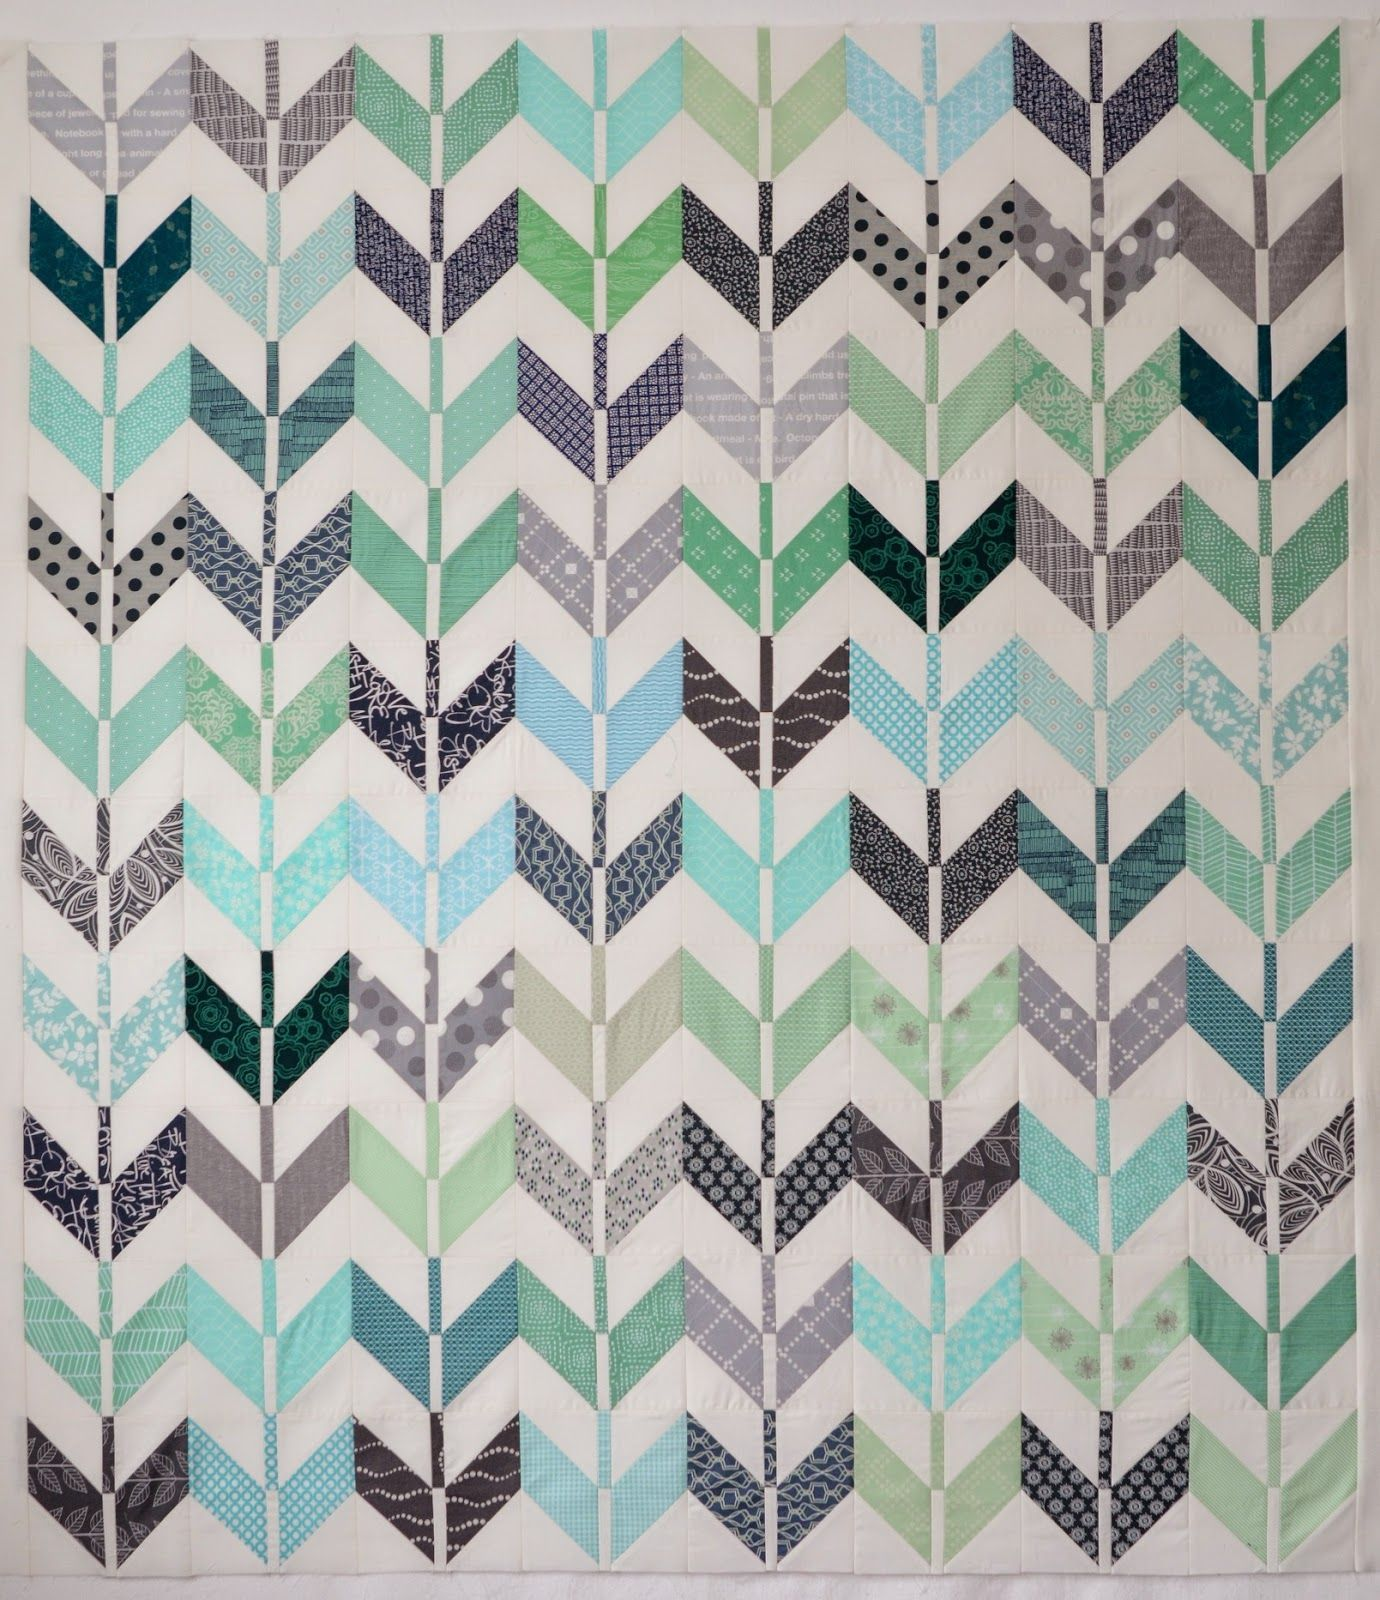 Hyacinth Quilt Designs: A Free Pattern! | Quilts <3 | Pinterest ... : hyacinth quilt designs - Adamdwight.com